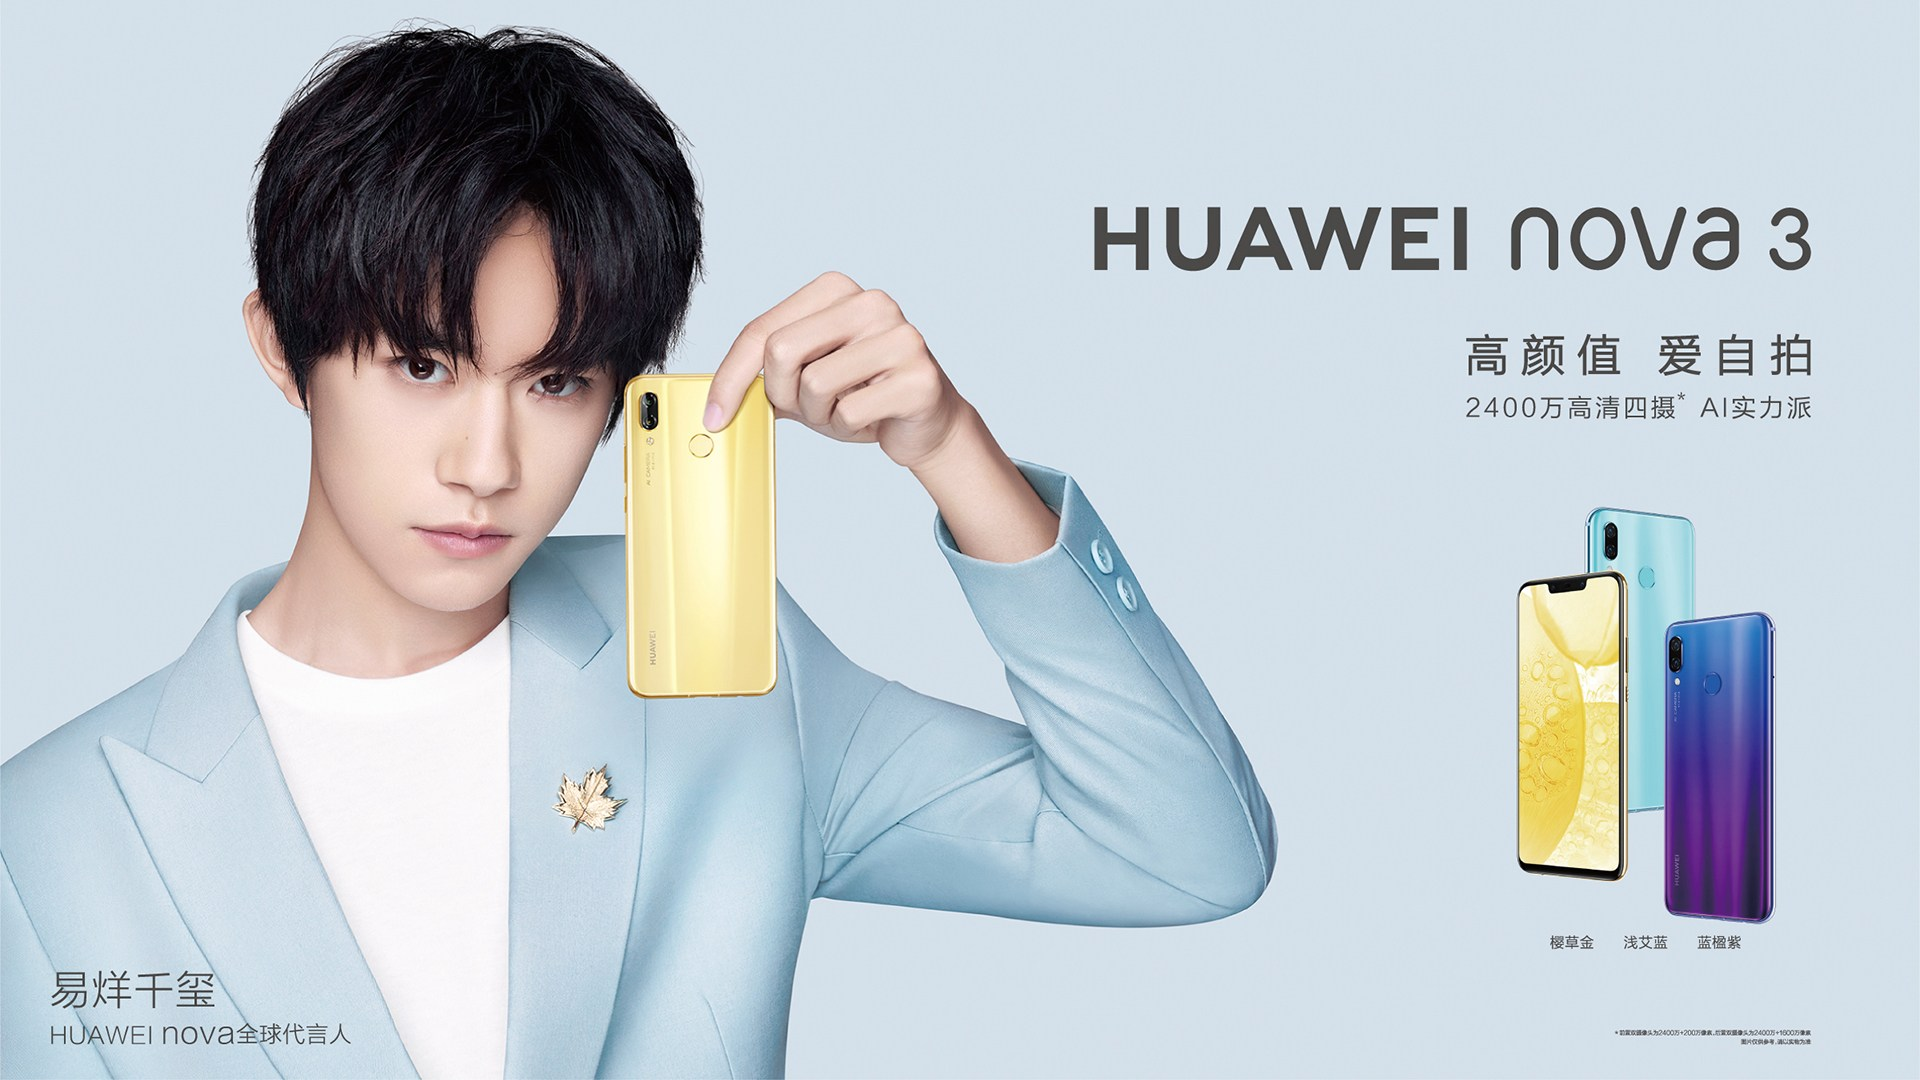 Photo of Huawei Nova 3 with 6GB RAM + 128 GB storage and 4 cameras now available for pre-order